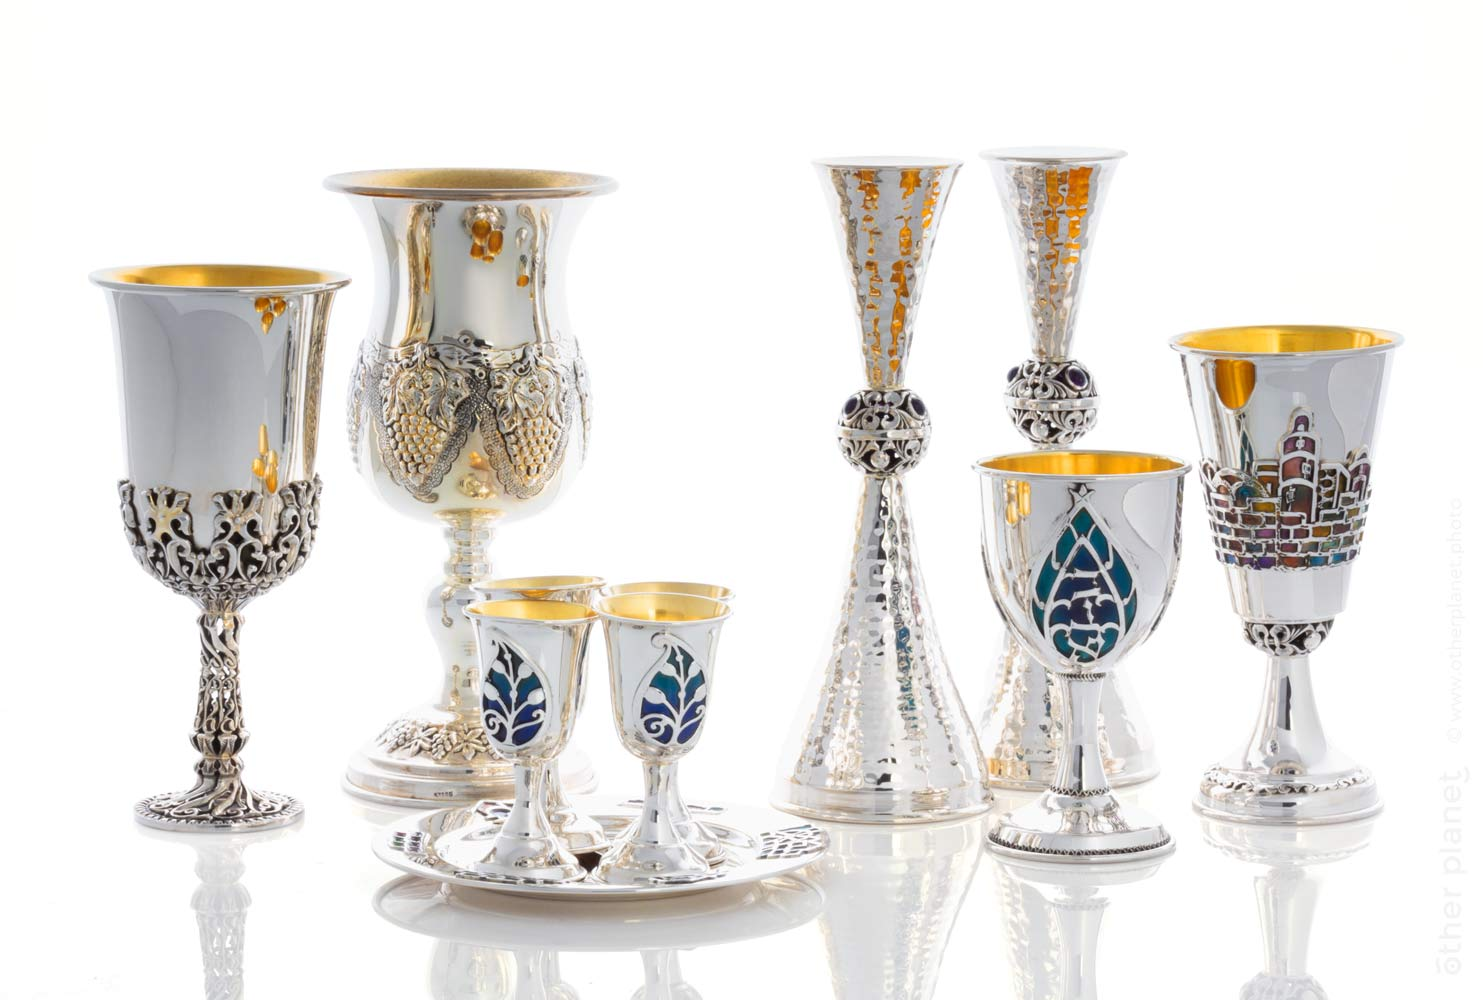 Judaica set composition